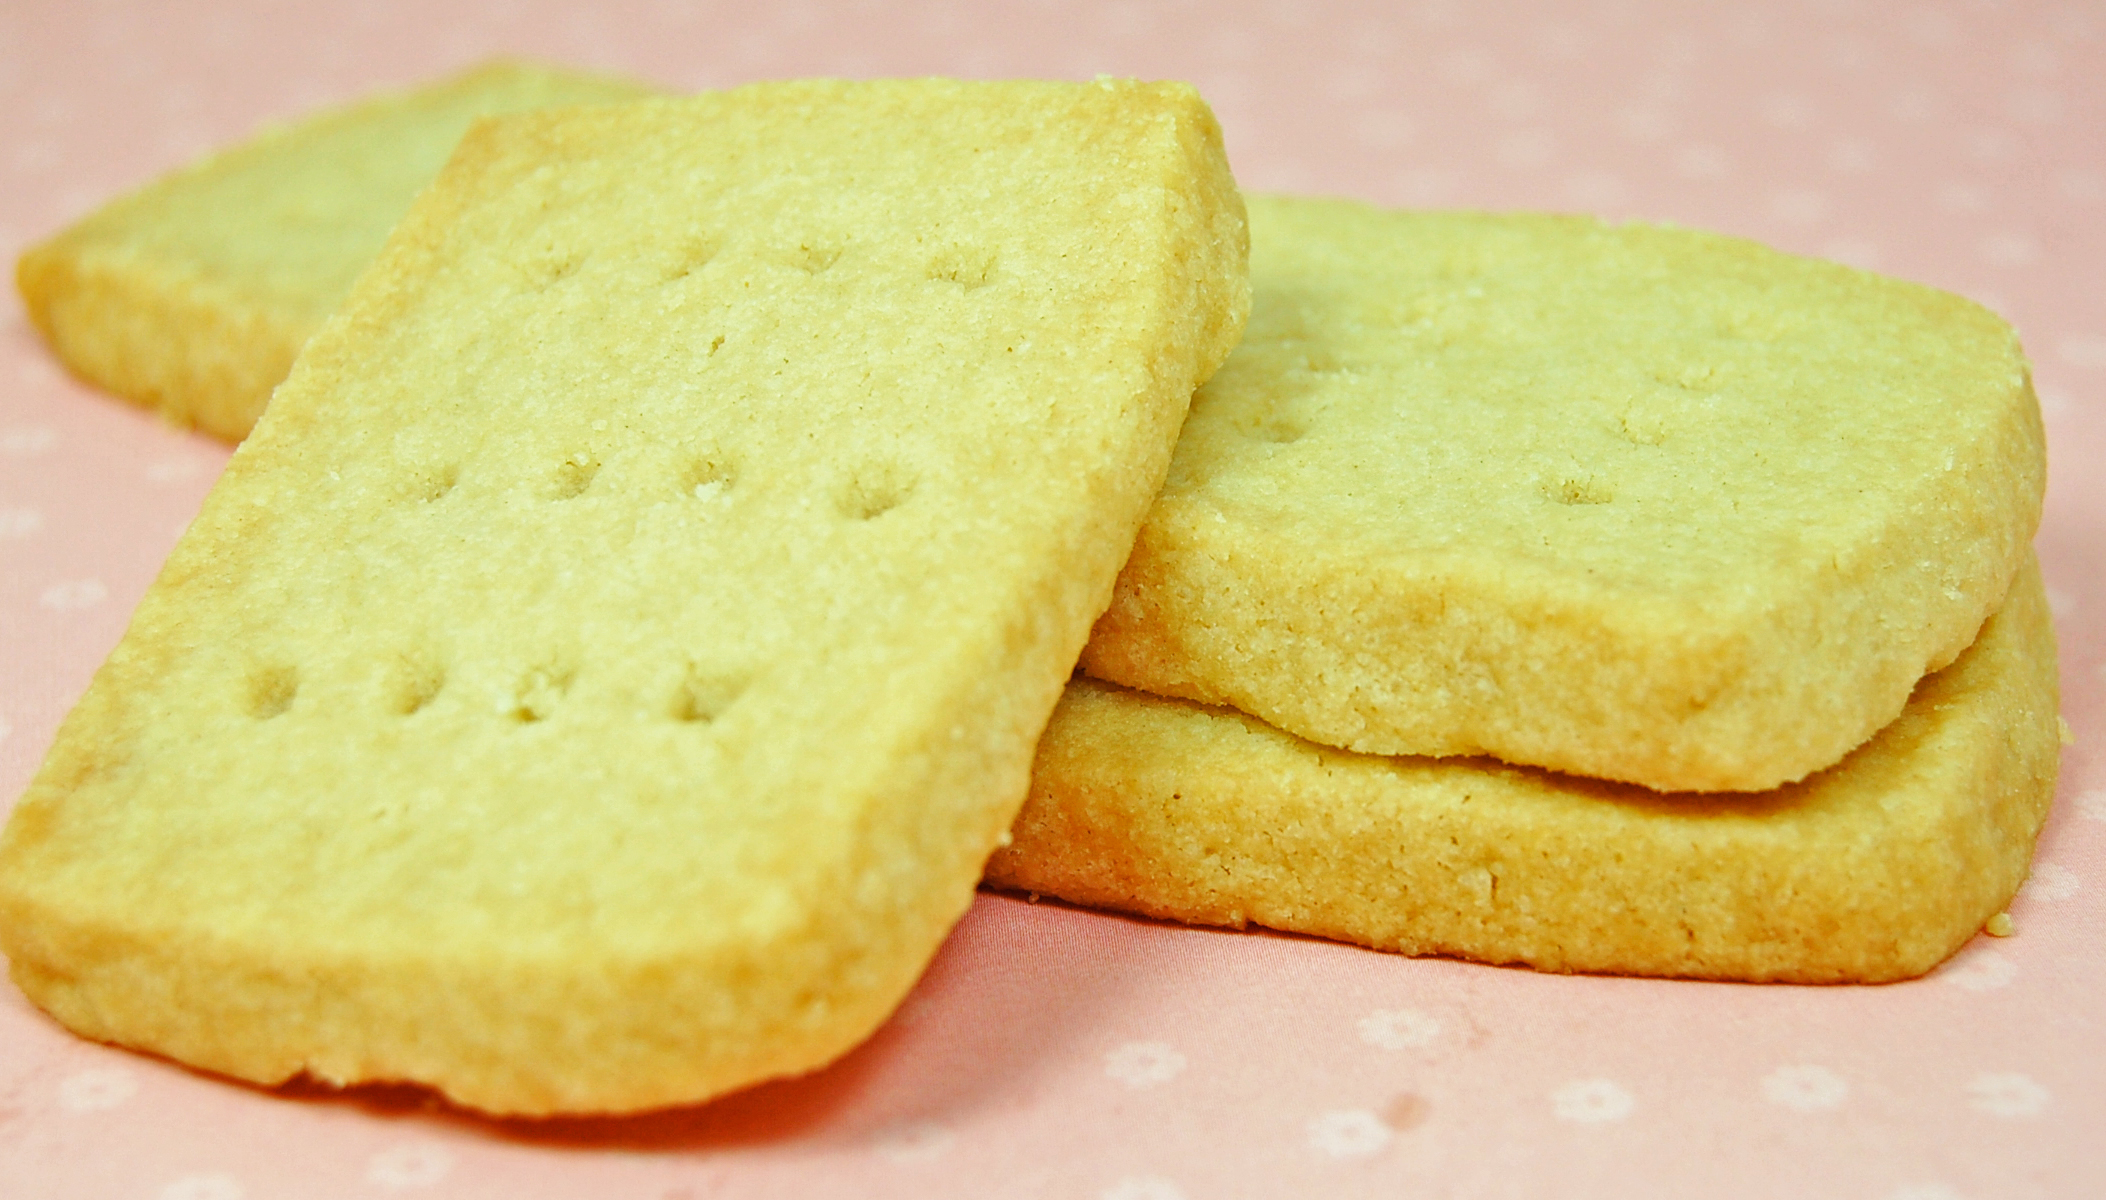 scottish shortbread a buttery cookie for the holidays 2 cups butter ...